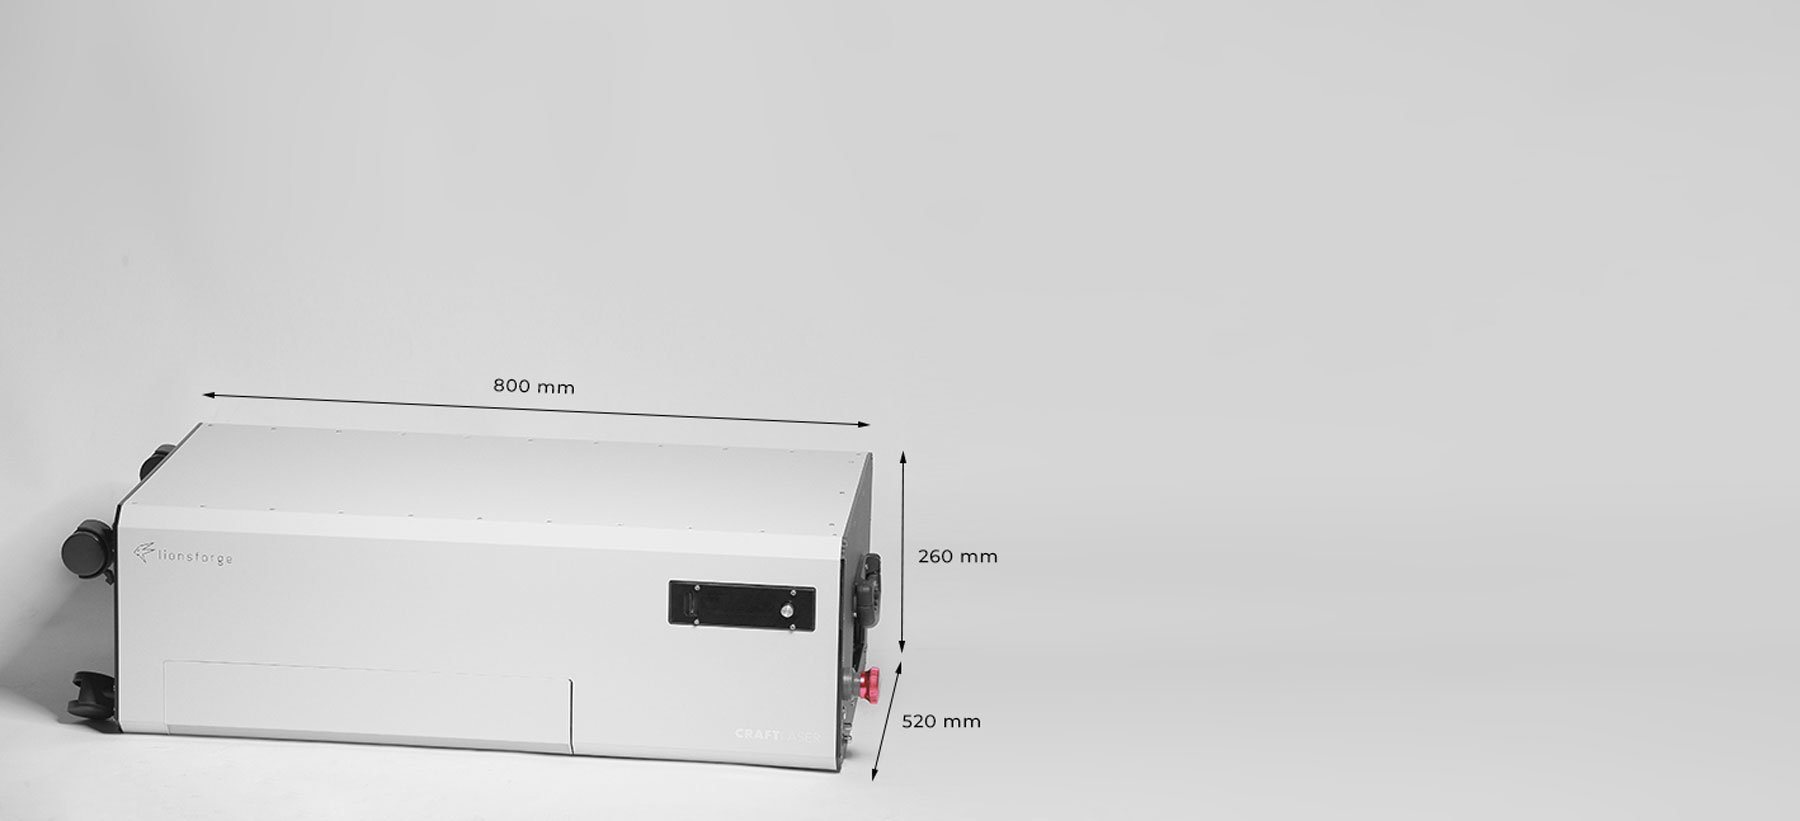 The CraftLaser 40W Laser Cutter